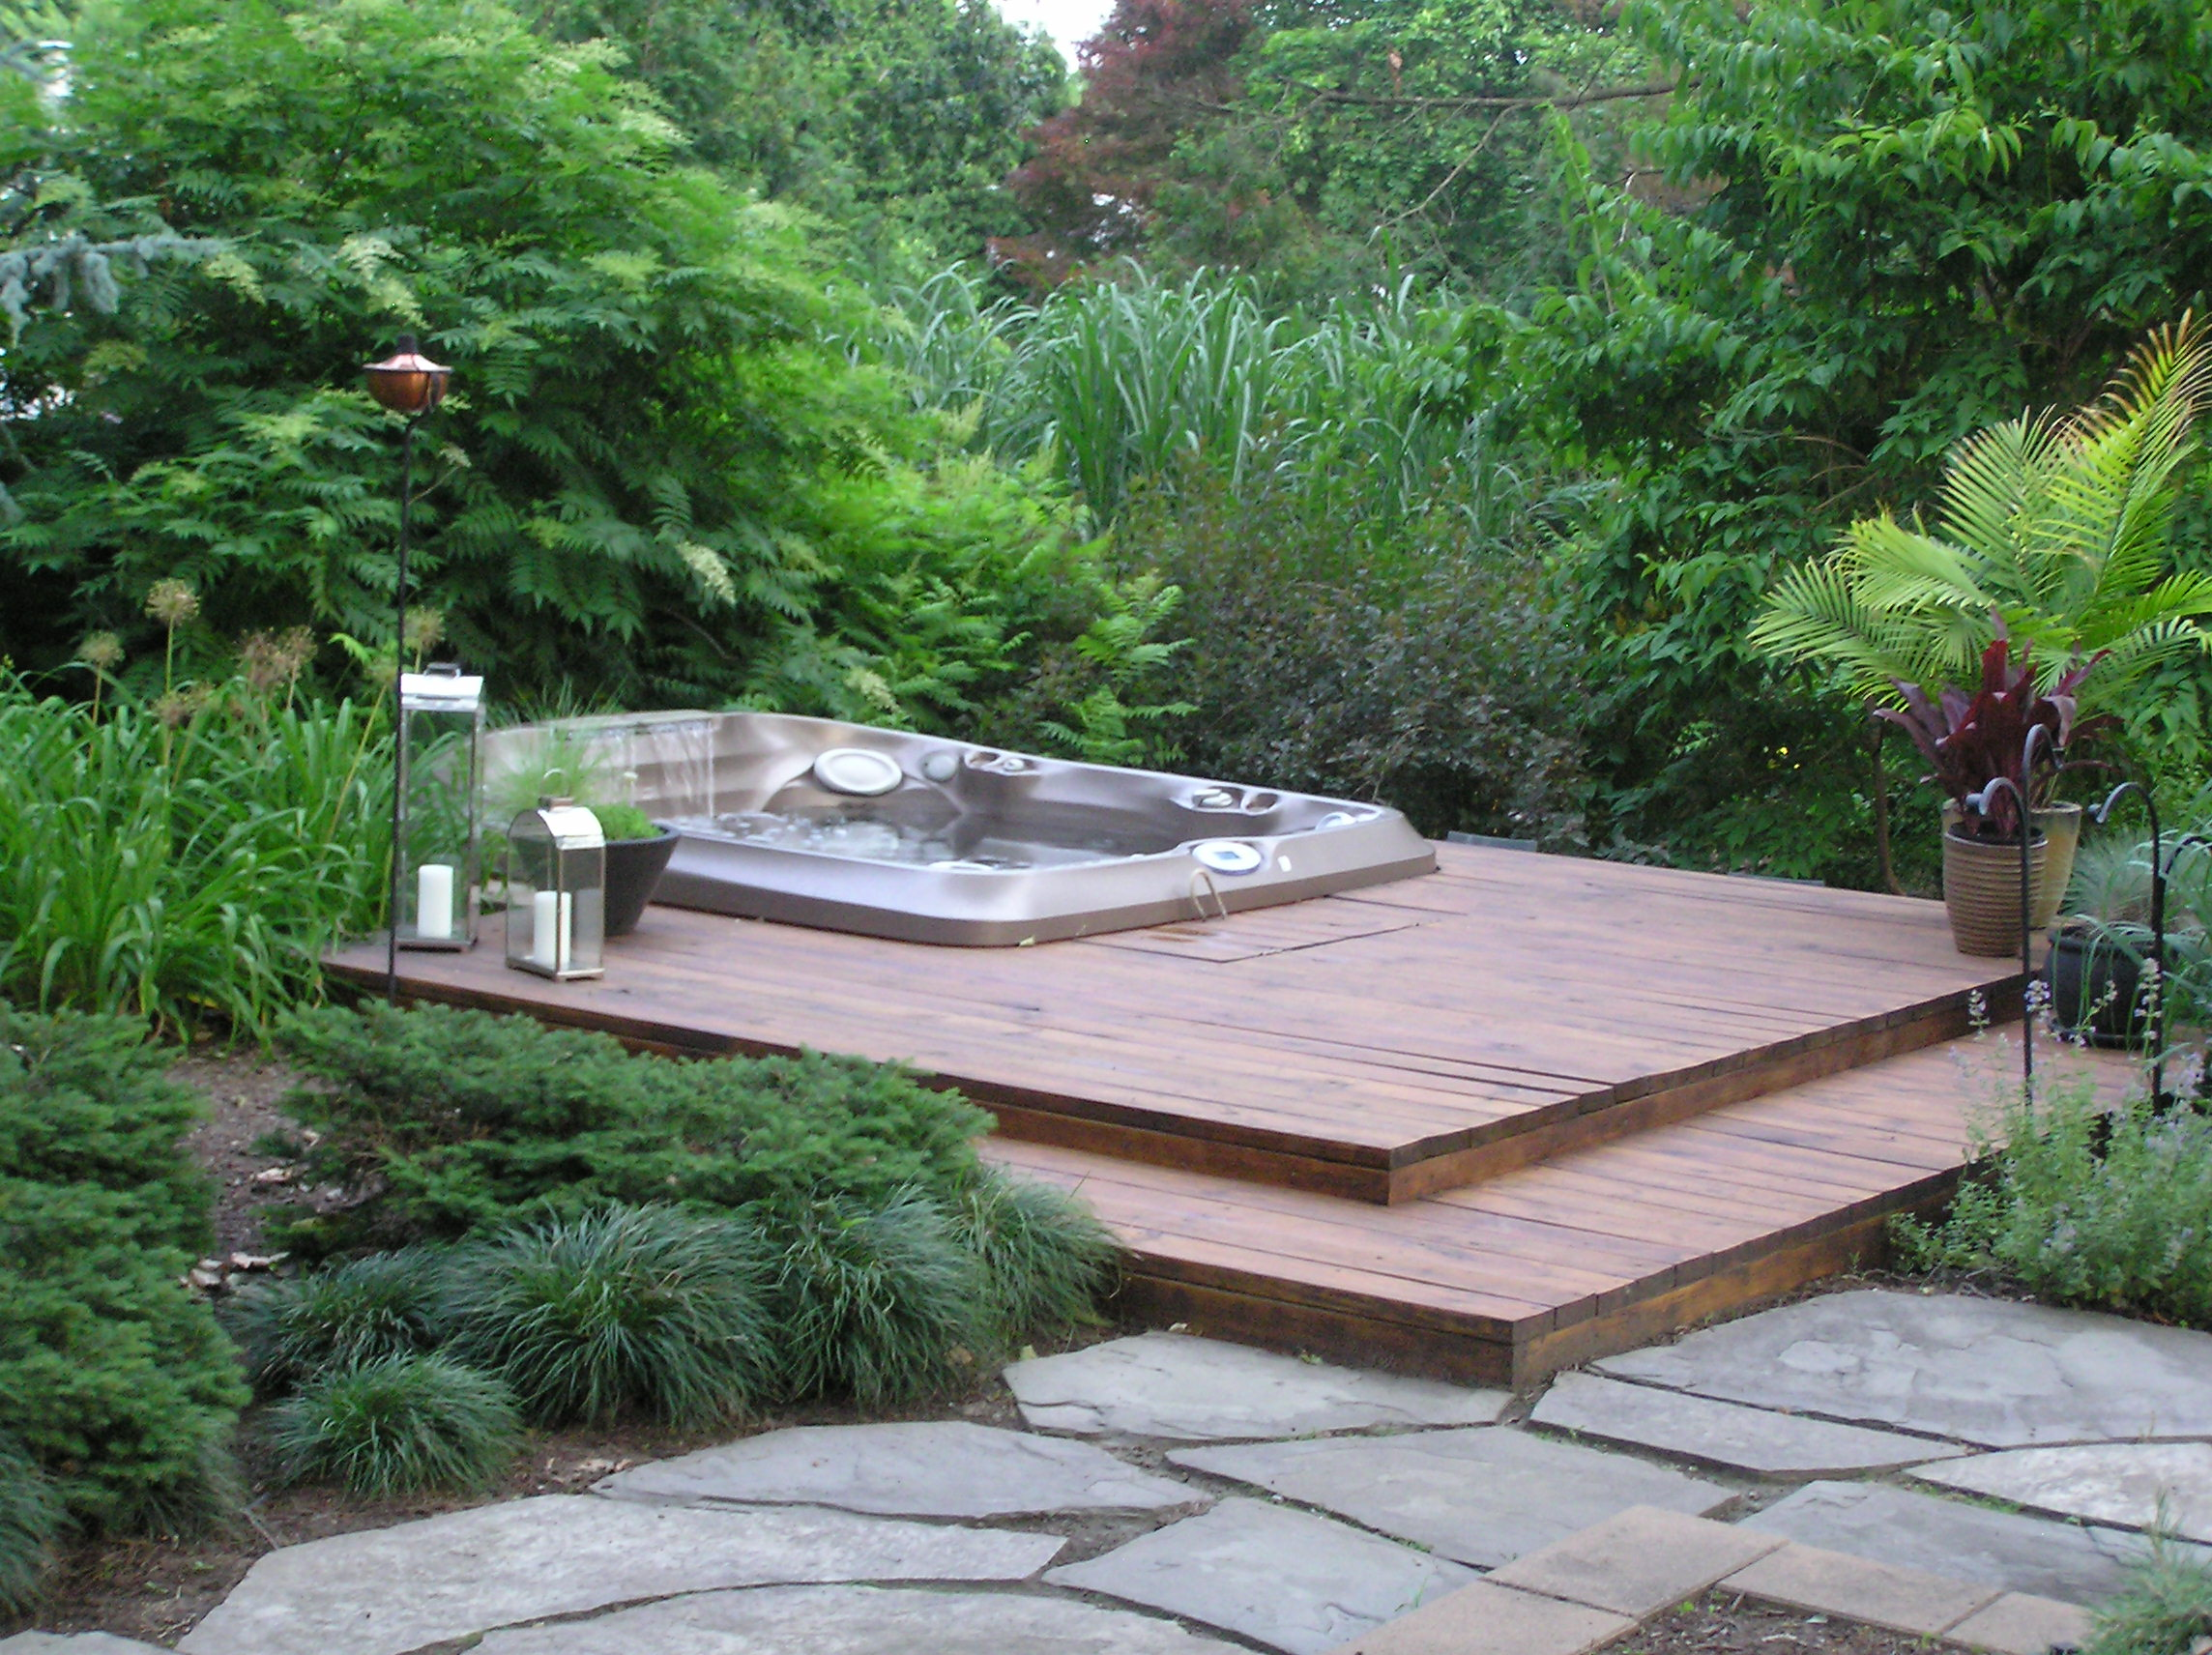 Two Level Hot Tub With Deck On Top Bar Below Garden